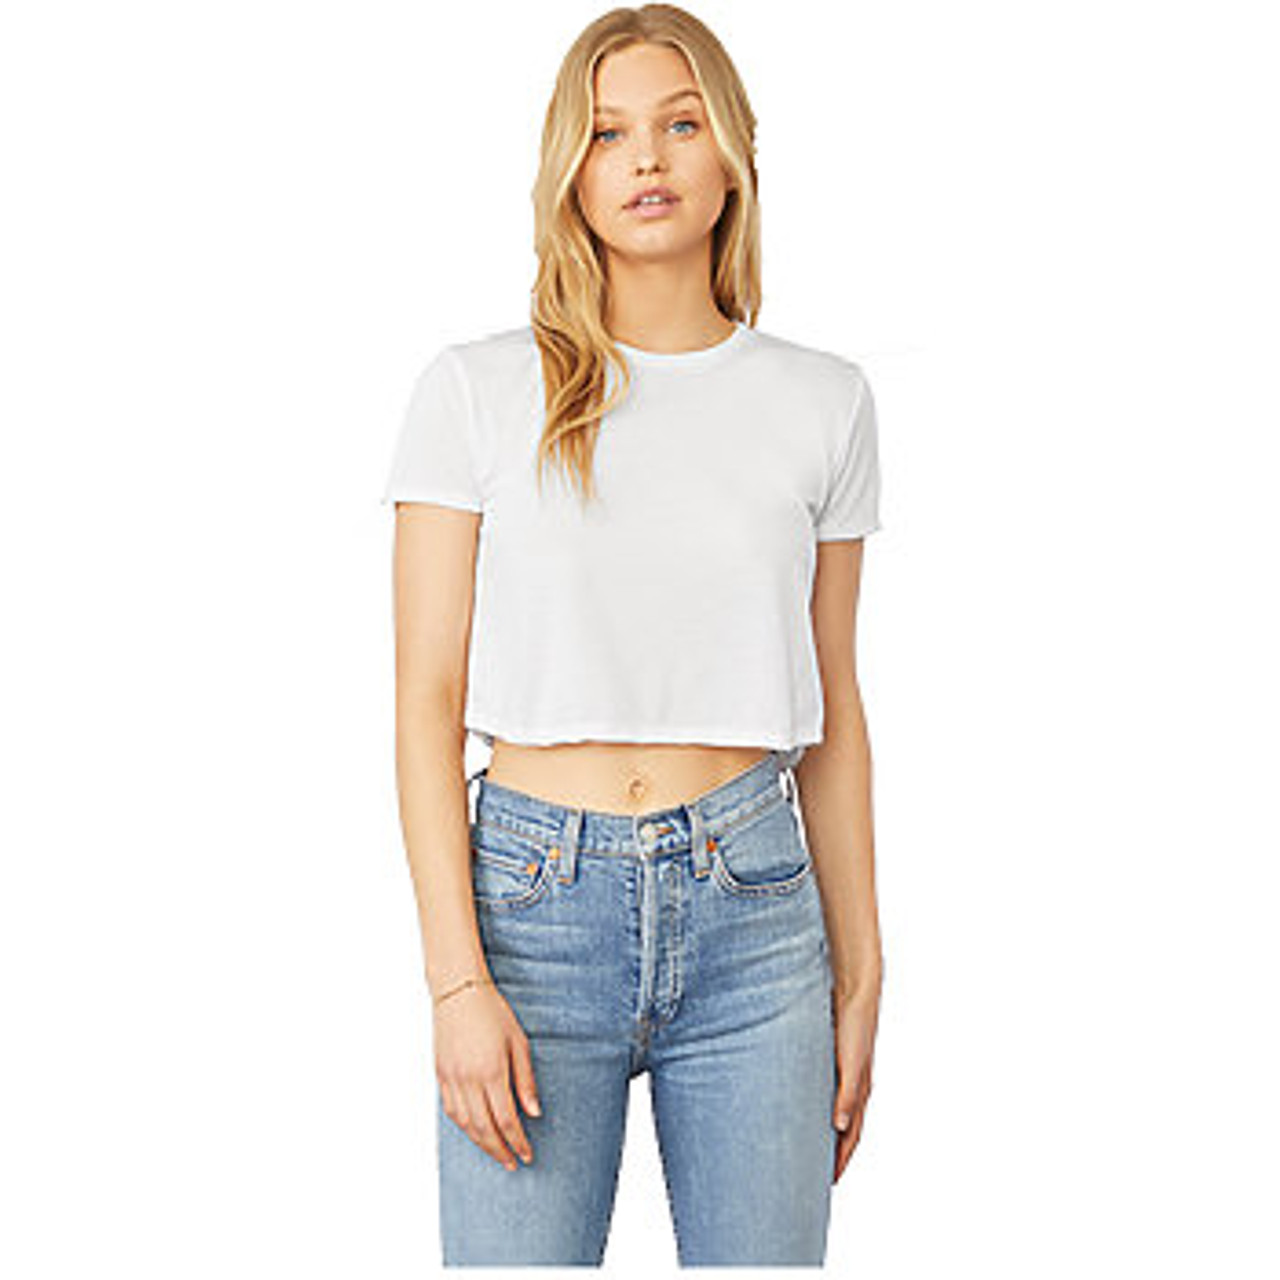 7055f79e573 ... 8882 - White · 8882 Size Guide. Previous. 8882 Bella + Canvas Women's  Flowy Cropped Tee ...